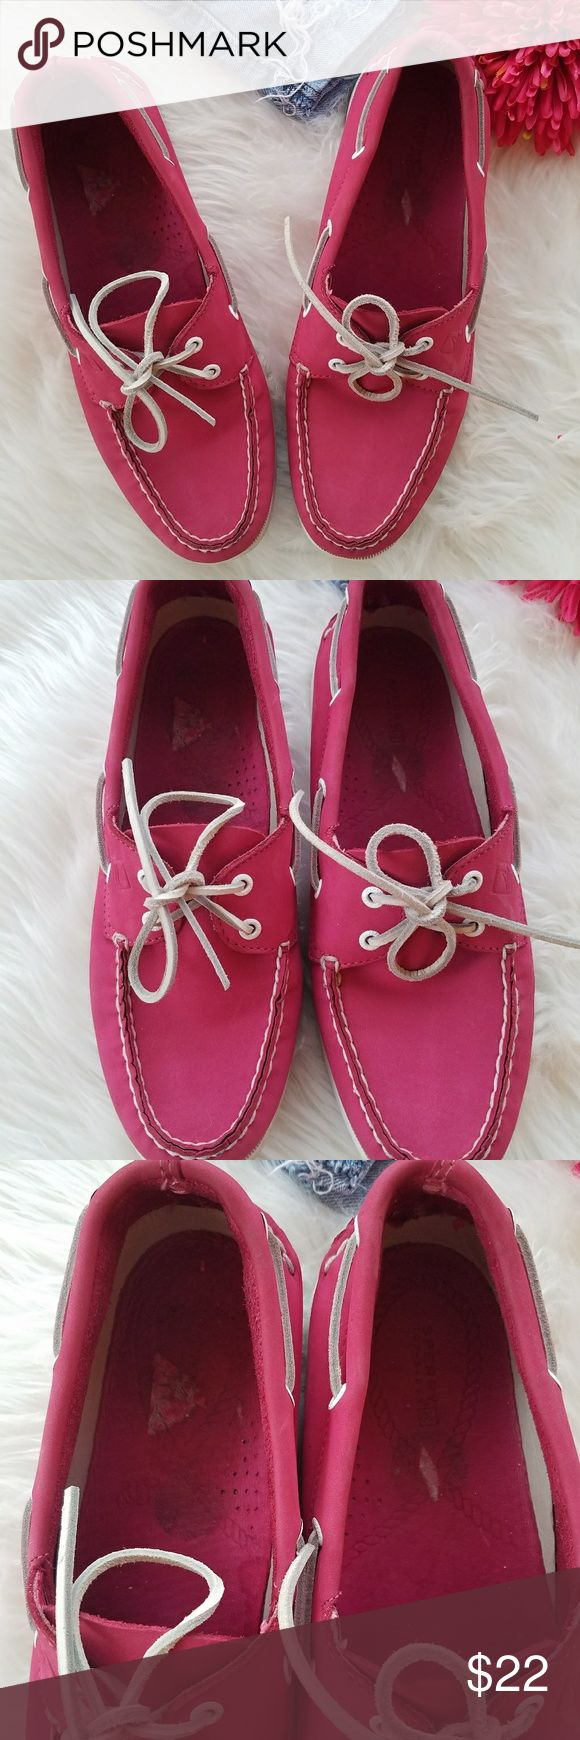 Pink Sperry Top sider Pink Sperry Top sider Bringing optimum style, featuring a leather upper and rawhide laces. Non-marking rubber outsole with Wave-Siping for ultimate wet/dry traction. Shoes have signs of wear, dirt,  scuffing and creasing. They need cleaning. Please note shoes have leather peeling in the inside on both shoes, not noticeable when wearing. Refer to last picture. Sperry Top-Sider Shoes